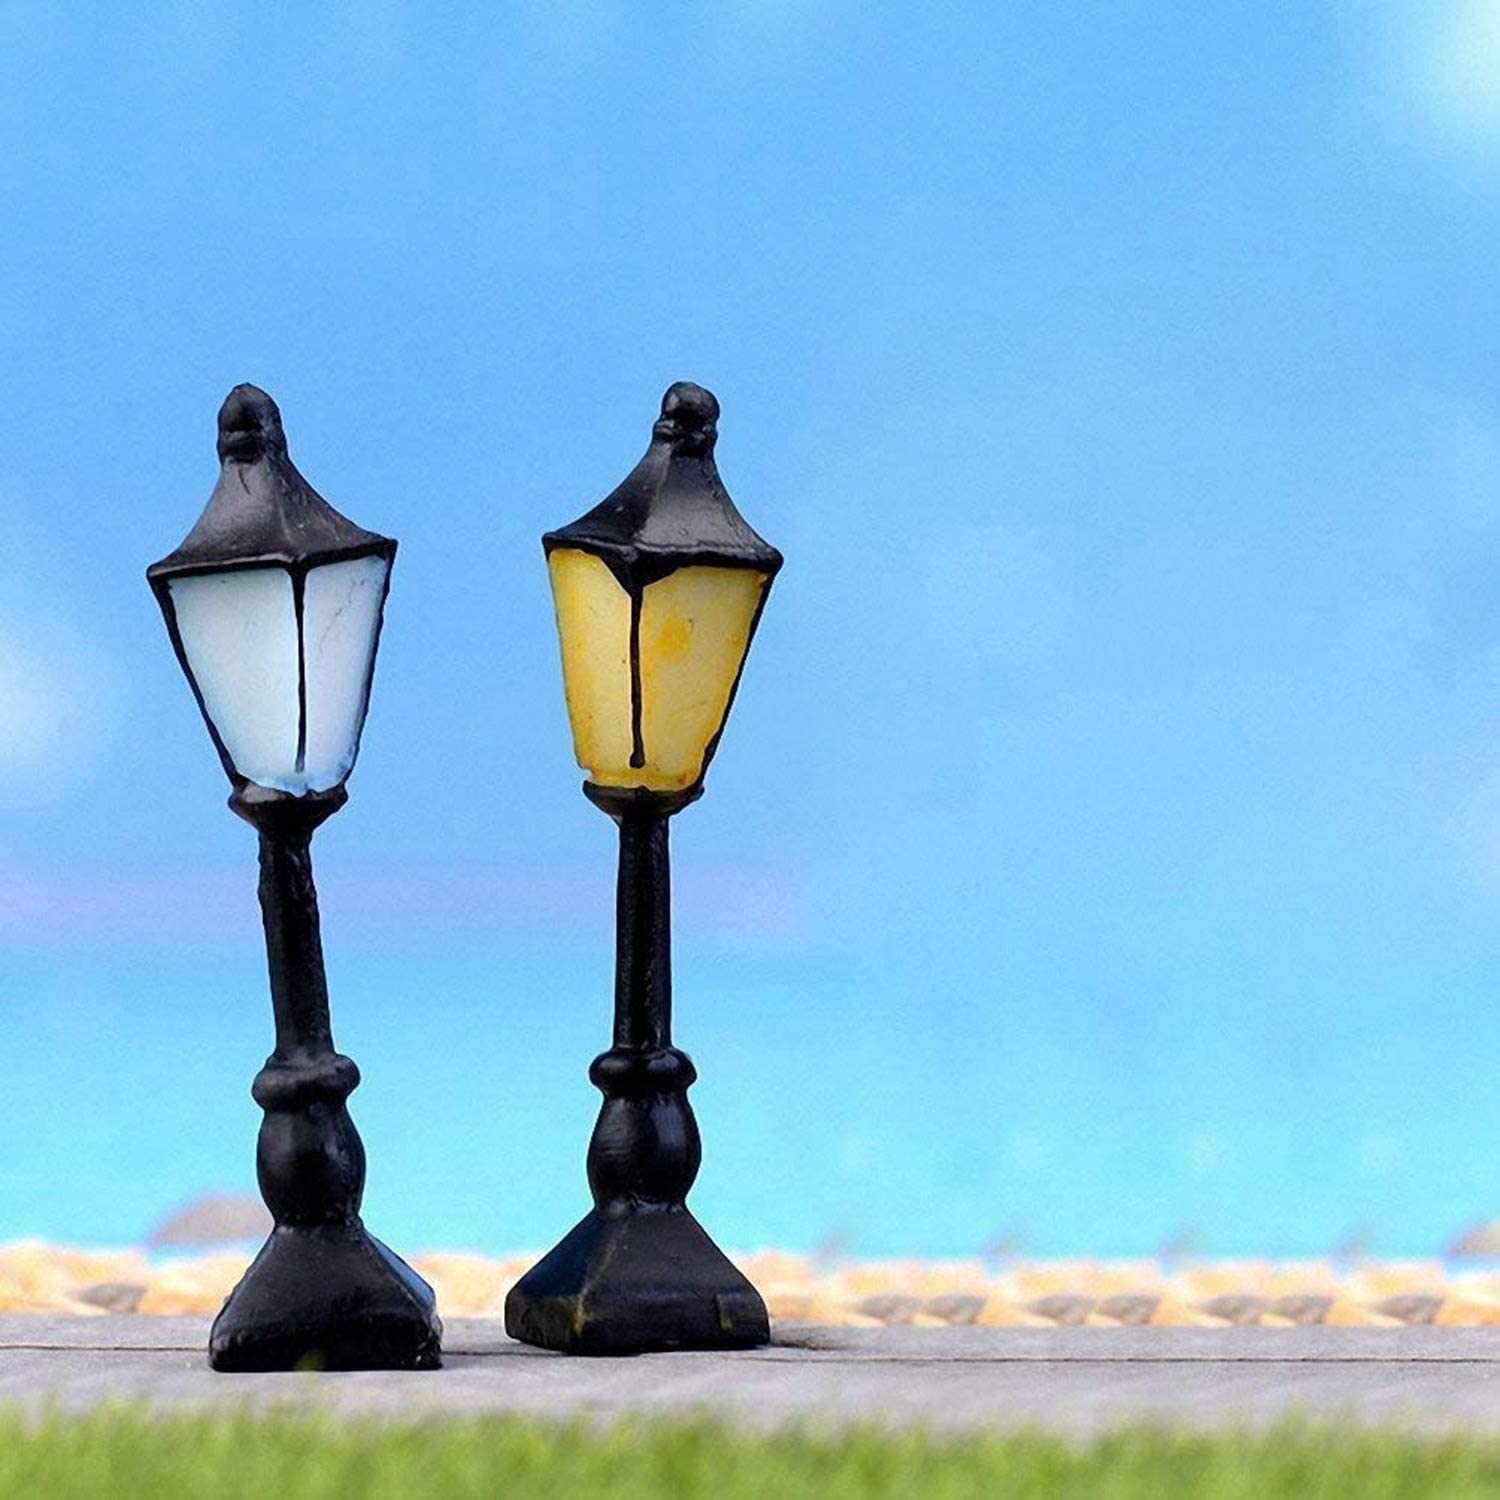 2 Pcs Streetlight /& 1 Pcs Retro Postbox Moligh doll 3 Pcs Miniature Dollhouse Crafts Fairy Garden Ornament Outdoor Home Decoration